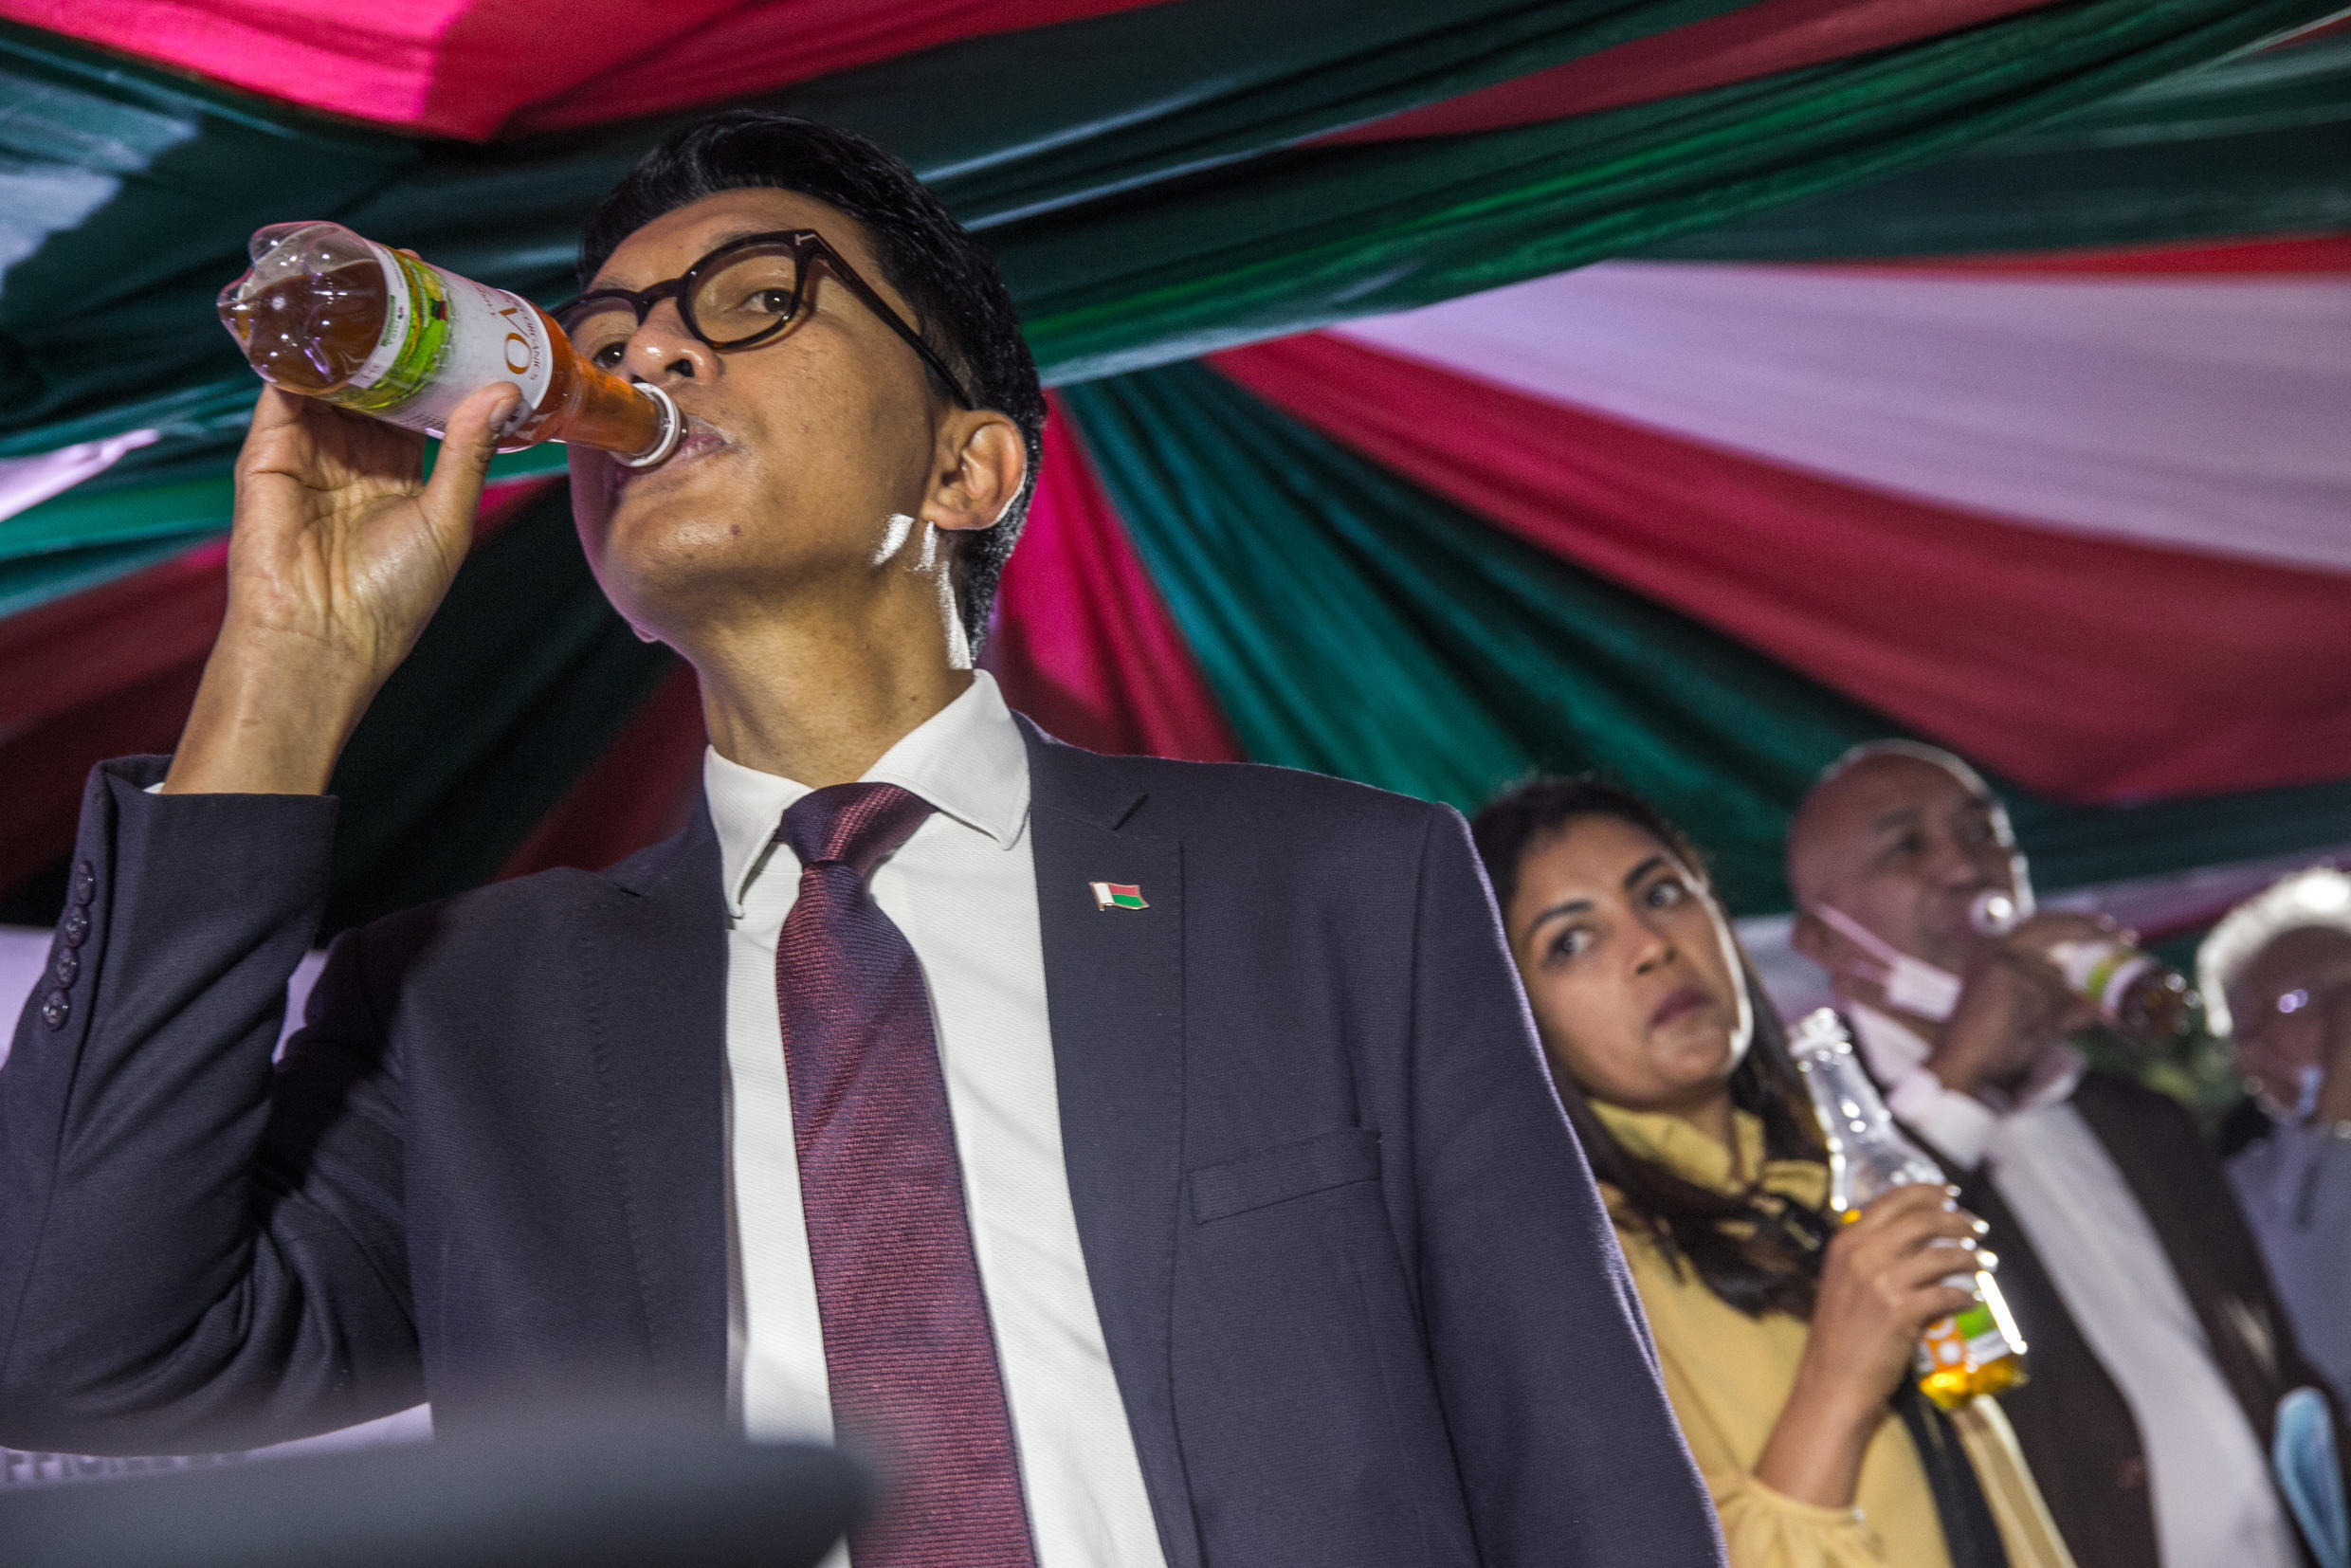 Madagascar's President Andry Rajoelina drinks Covid-Organics at a launch event in Antananarivo on 20 April 2020.